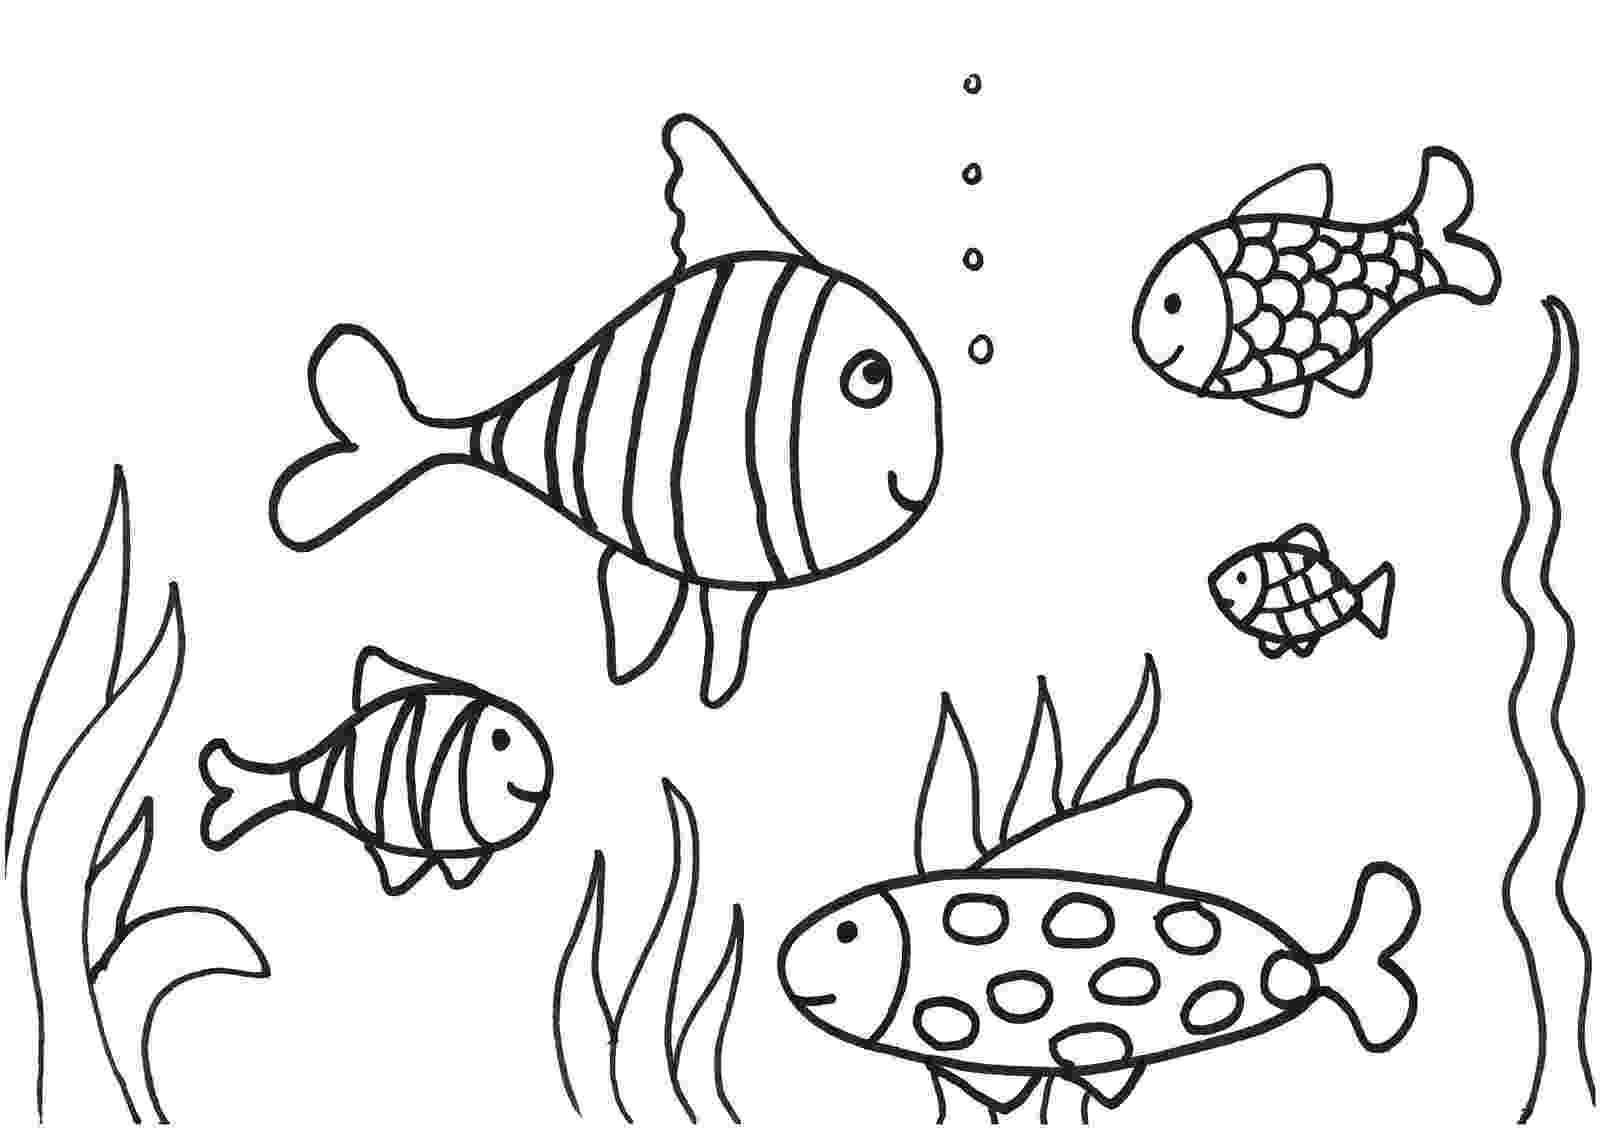 printable fish simple fish coloring pages download and print for free fish printable